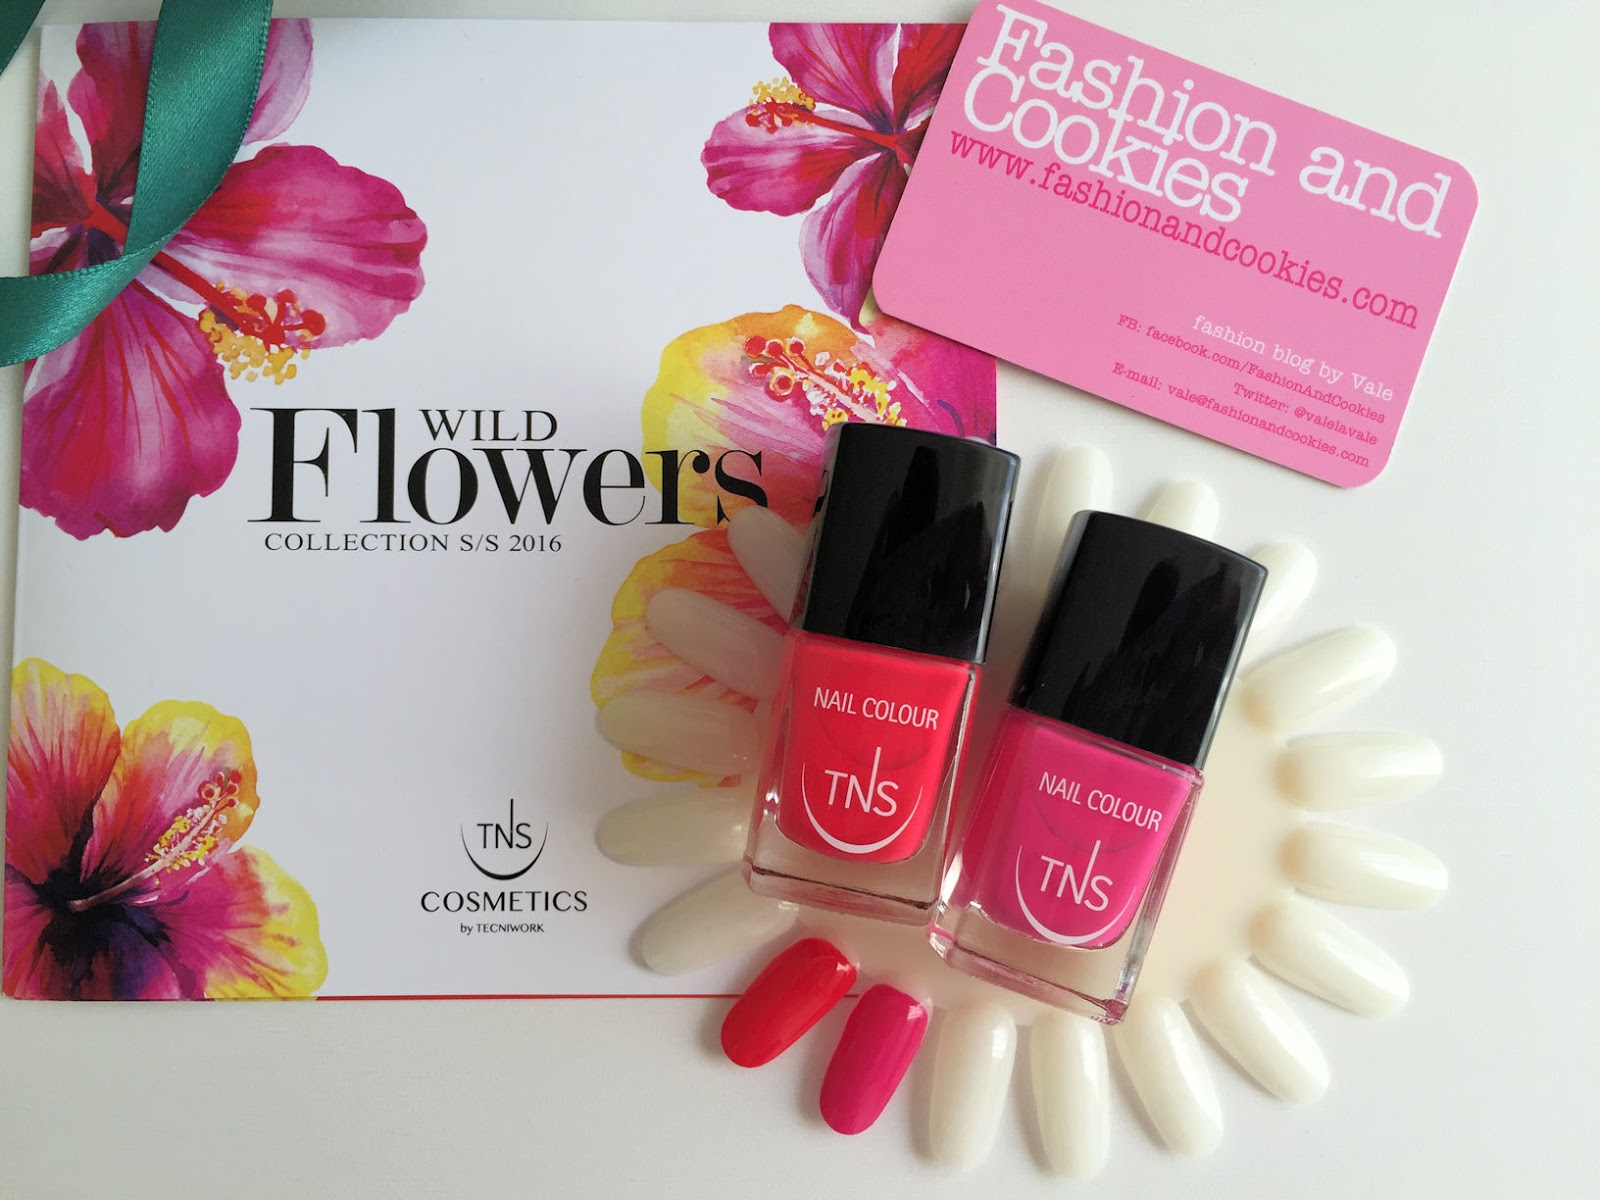 TNS Cosmetics Wild Flowers collection swatches on Fashion and Cookies beauty blog, beauty blogger